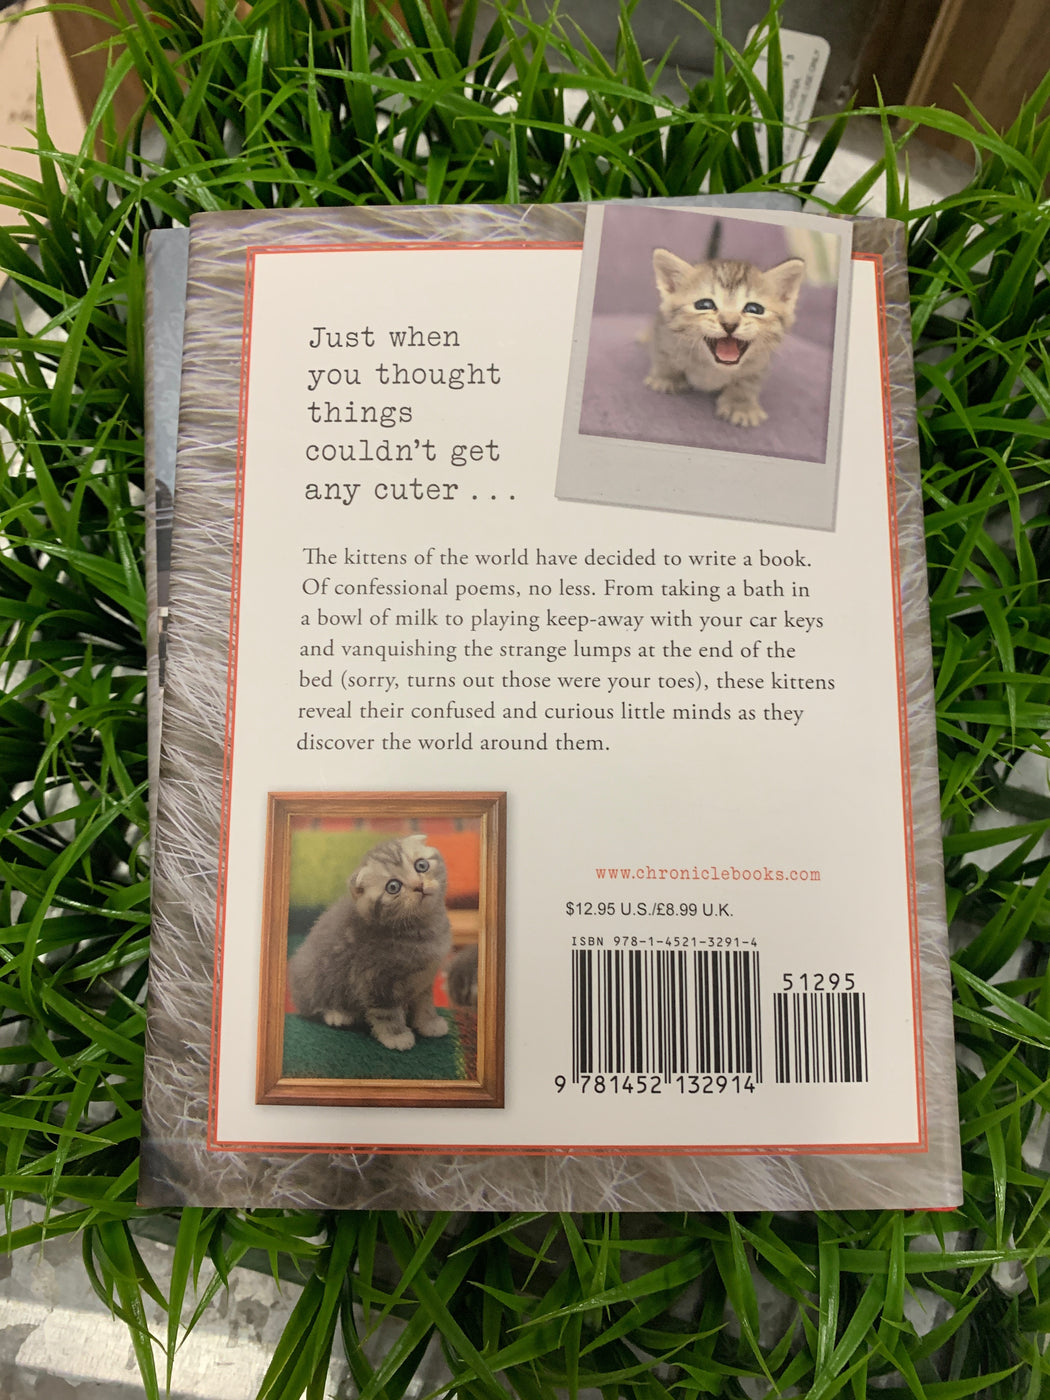 "I Knead My Mommy is a book of confessional poems about the triumphs, trials, and daily discoveries of being a kitten. From climbing walls to claiming hearts, these little cats bare all in such instant classics as ""And Then You Said 'No,'"" ""Ode to a Lizard I Didn't Know Is Also a Pet in This House,"" and ""I Will Save You."" With adorable photos of the poetic prodigies throughout, this volume gives readers a glimpse into their confused and curious feline minds as they encounter the world around them."